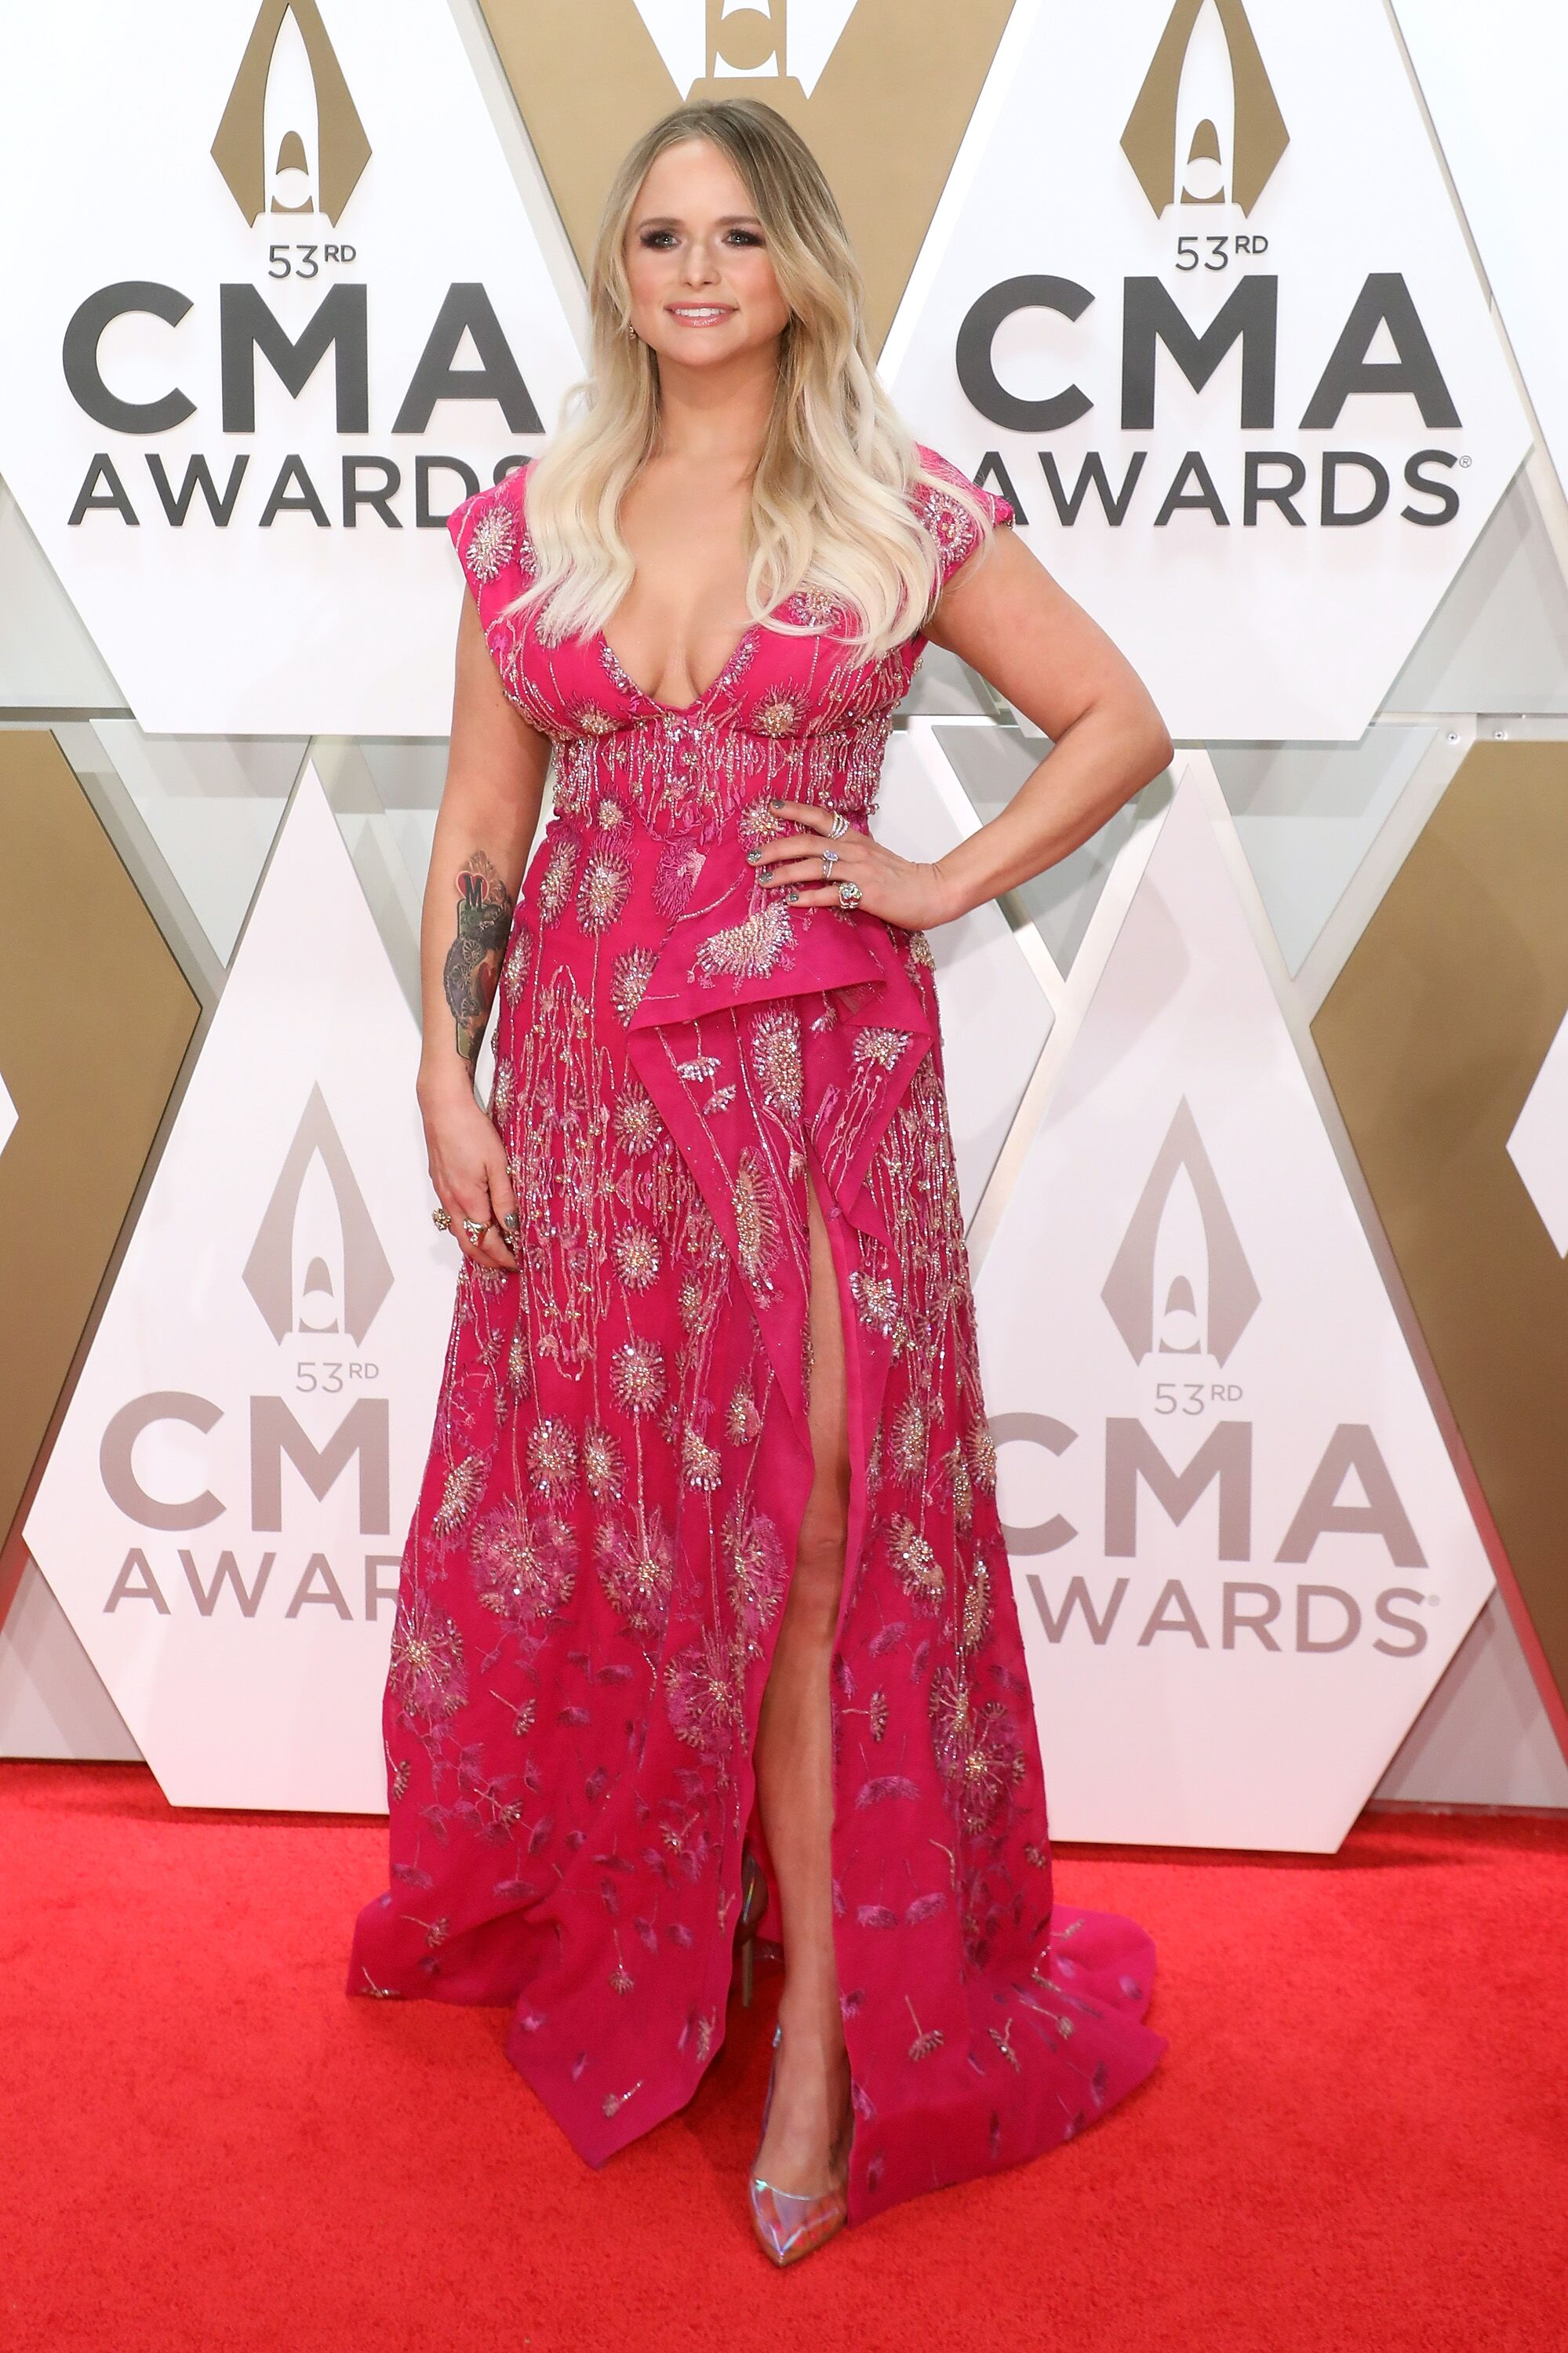 Miranda Lambert at the 53rd annual CMA Awards at Bridgestone Arena on November 13, 2019, in Nashville, Tennessee | Photo: Taylor Hill/Getty Images